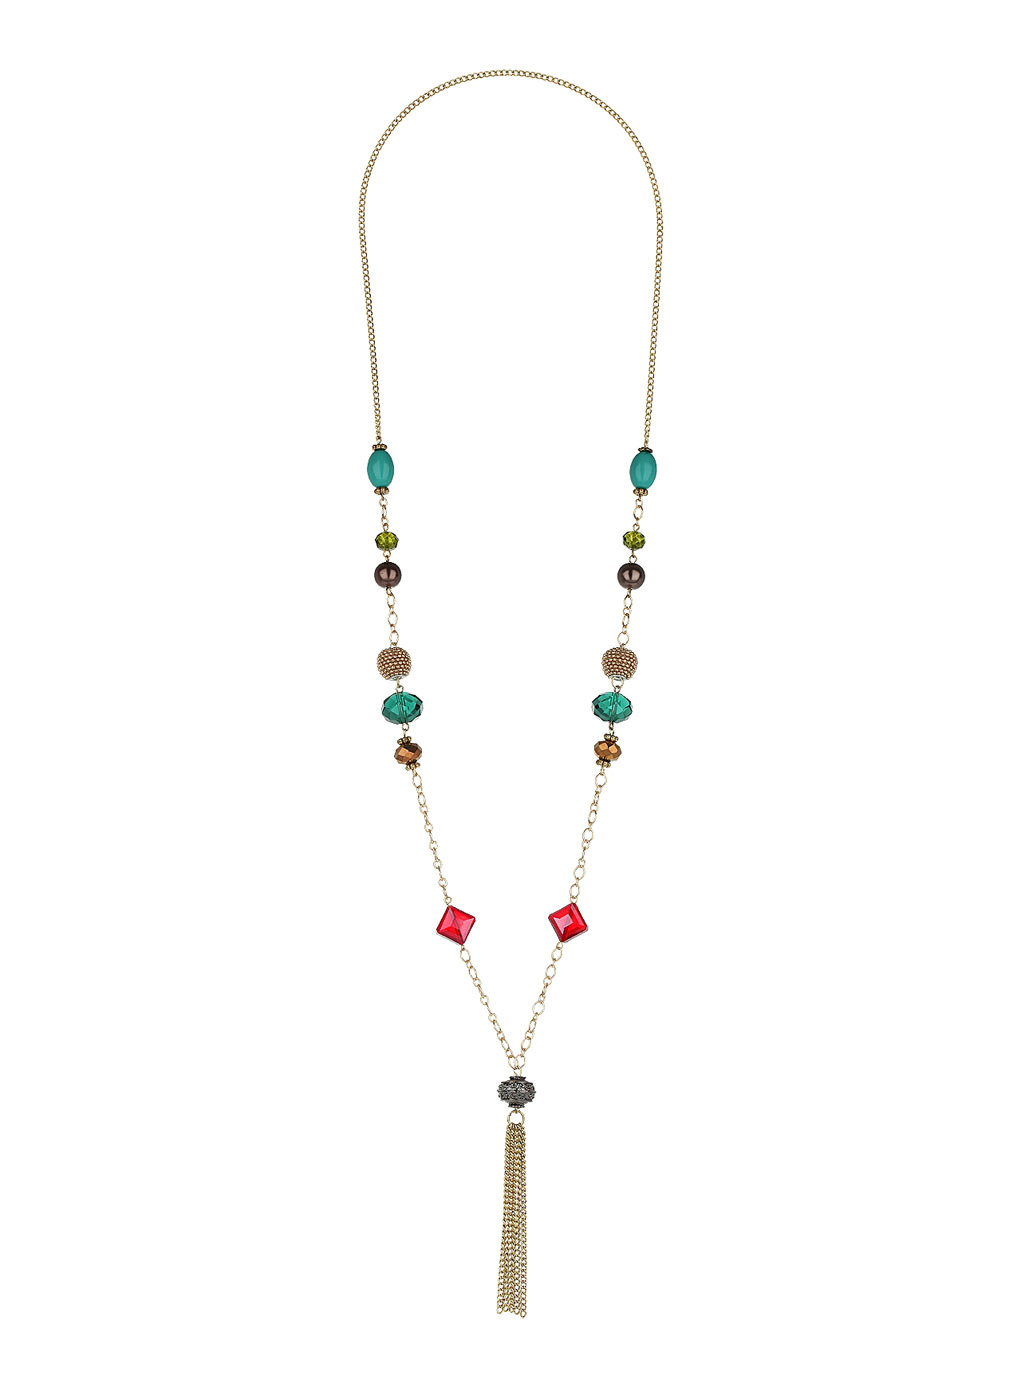 Blue Bead And Tassel Necklace - secondary colour: mint green; predominant colour: gold; occasions: casual, evening; style: pendant; length: long; size: standard; material: chain/metal; finish: metallic; embellishment: beading; season: s/s 2014